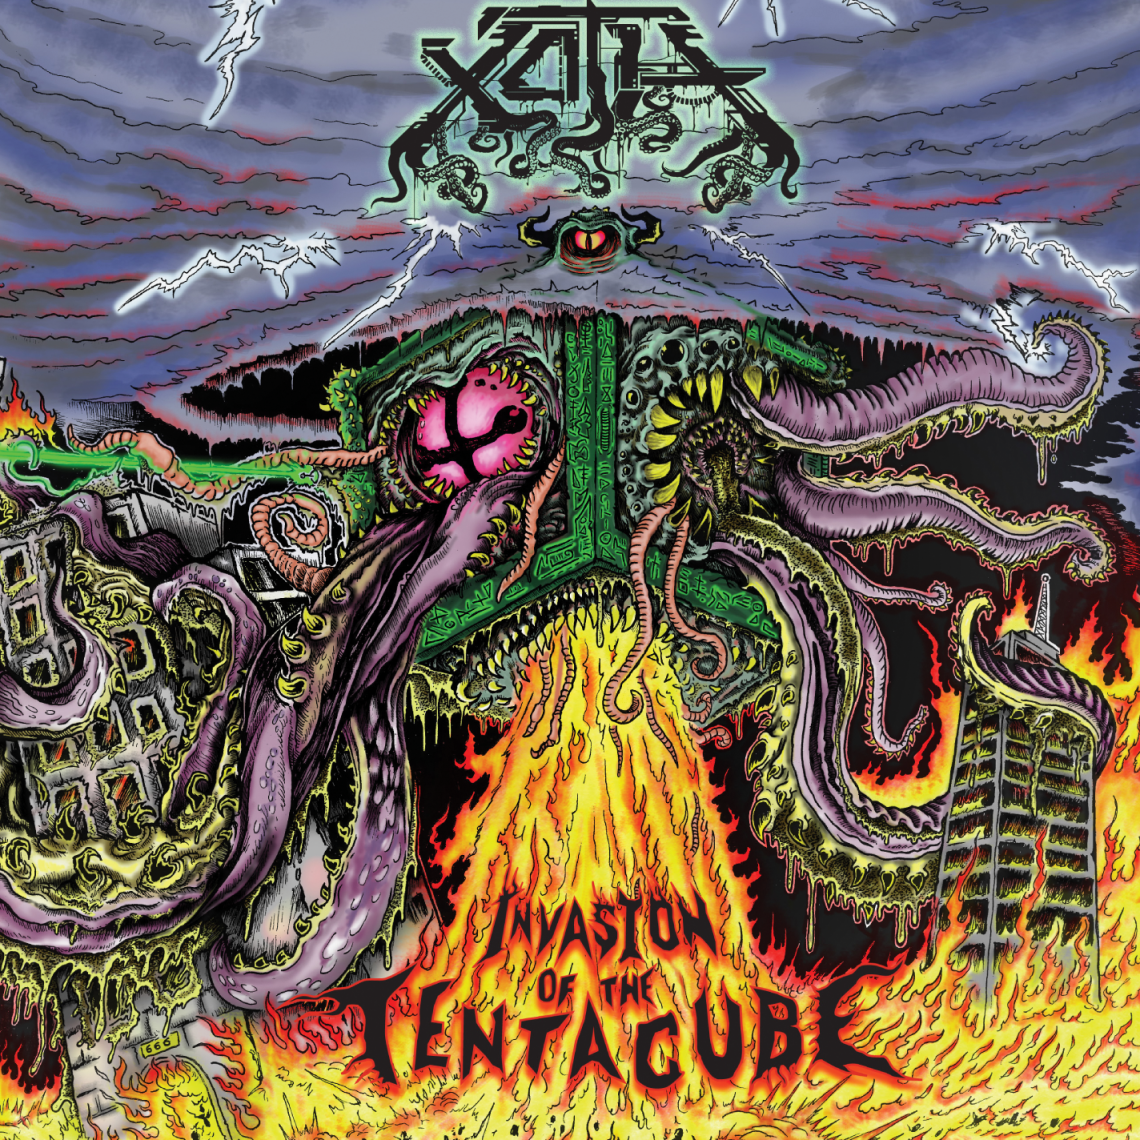 Xoth – Invasion of the Tentacube CD Review